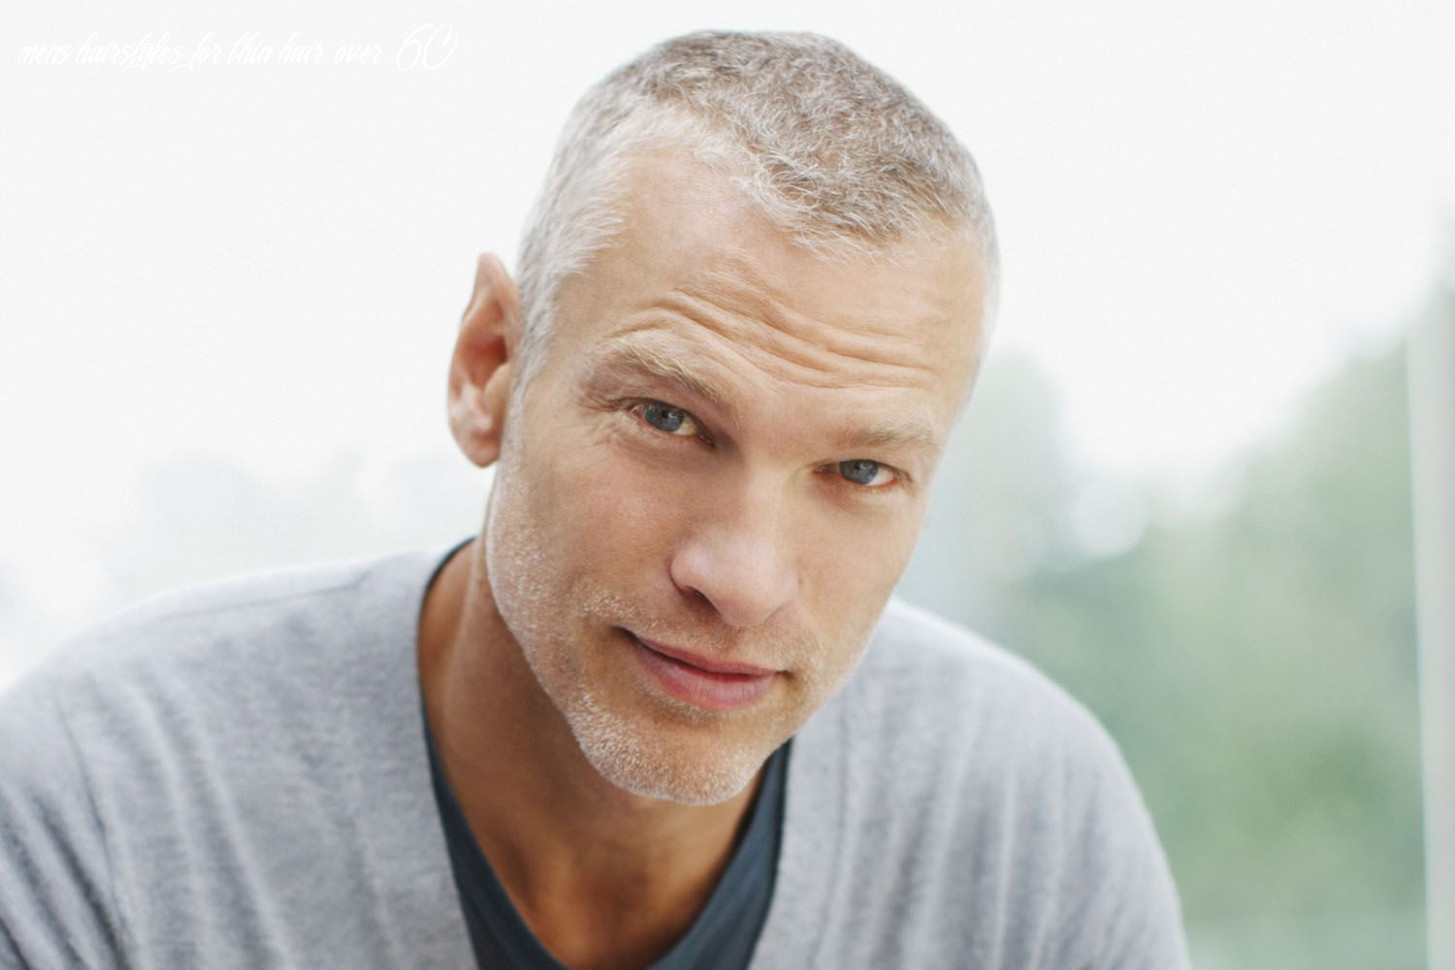 Cool haircuts for men over 10 mens hairstyles for thin hair over 60